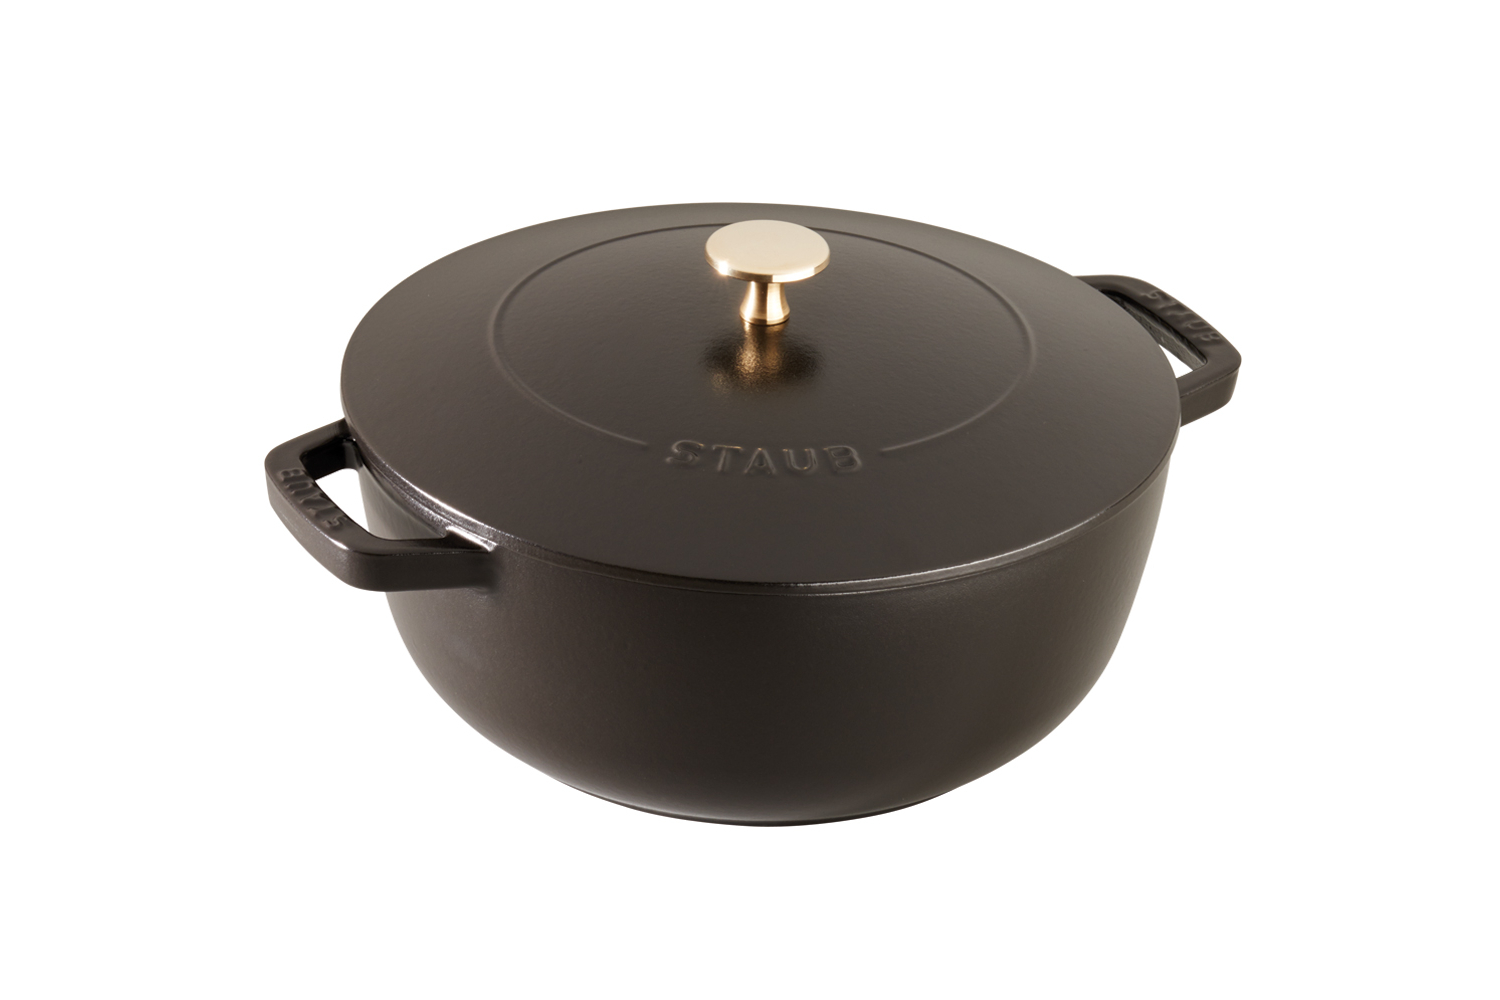 Staub Cast Iron 3 3/4 qt. Essential French Oven - Matte Black